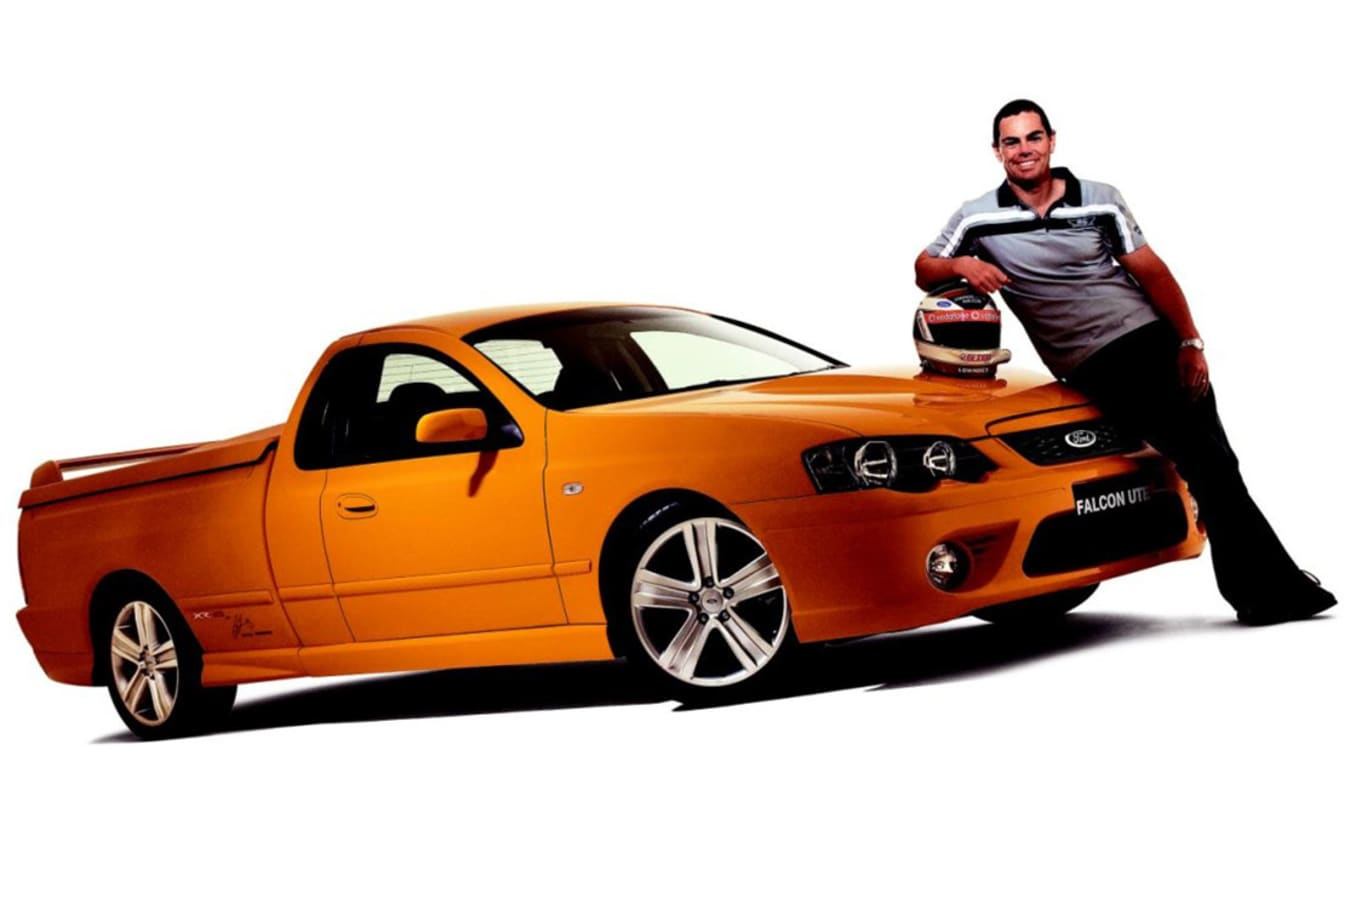 Ford Falcon Ute Craig Lowndes Embed Jpg